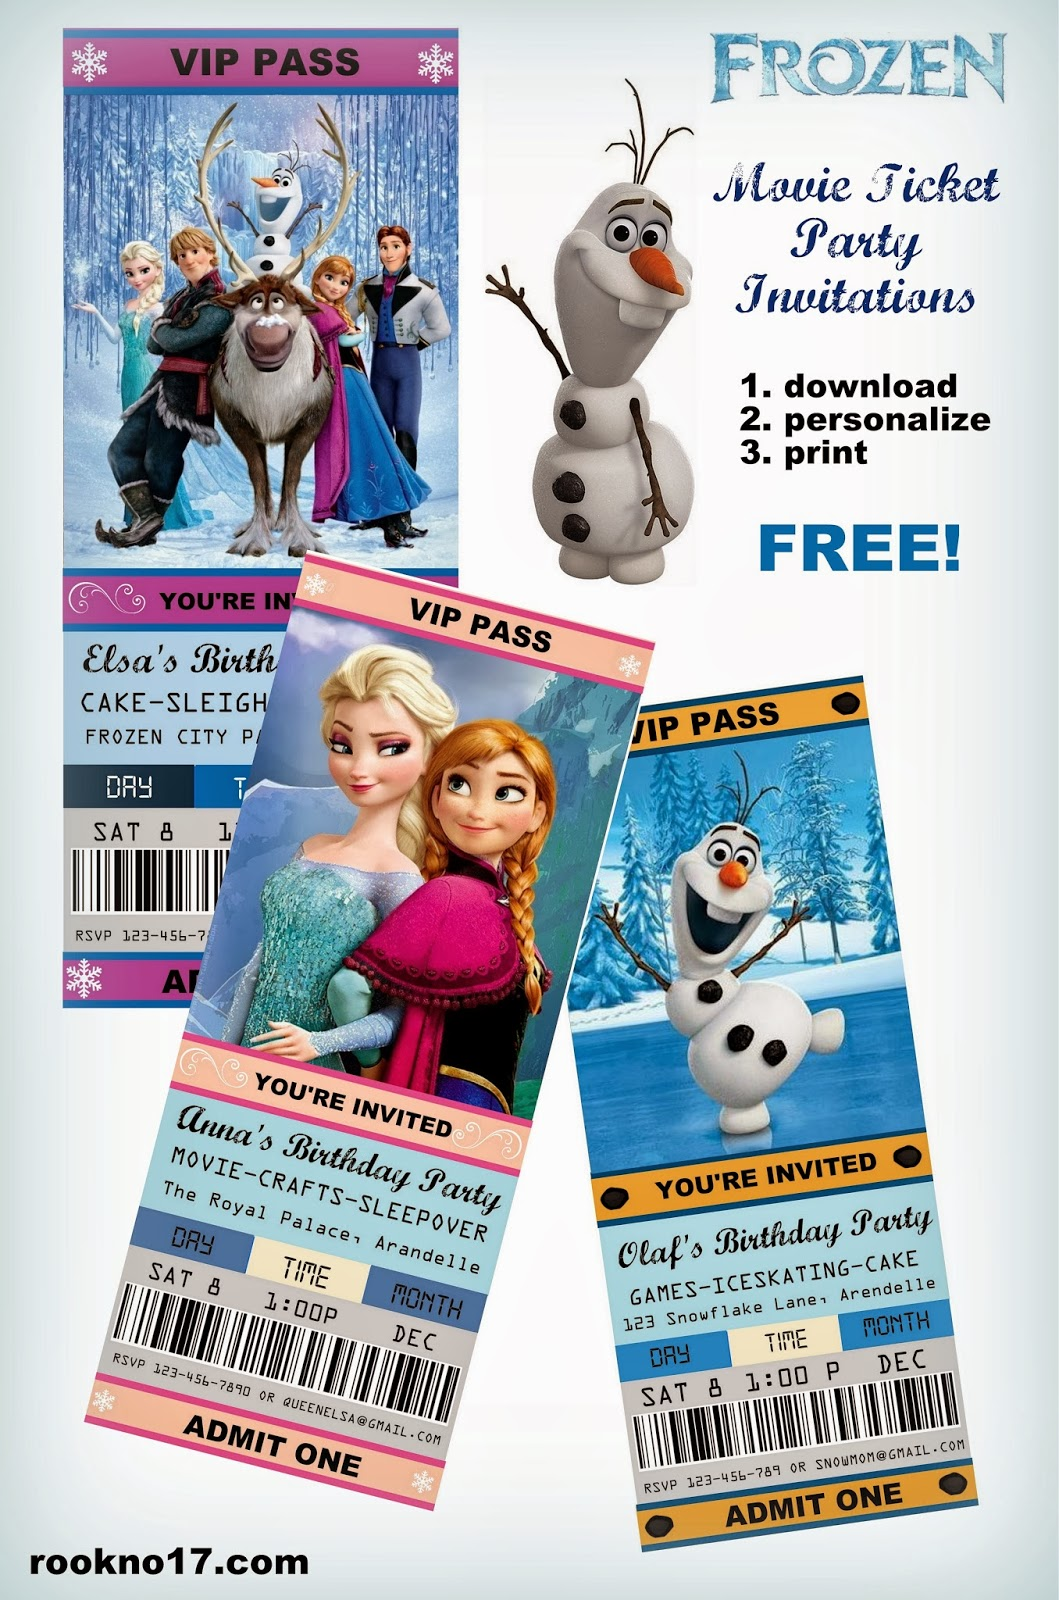 http://4.bp.blogspot.com/-ylJls8ZF_F0/UxeQ-7FZ1hI/AAAAAAAAZw0/6YtgcGX3O-8/s1600/frozen+movie+free+printable+ticket+invitations+birthday+party+ideas.jpg